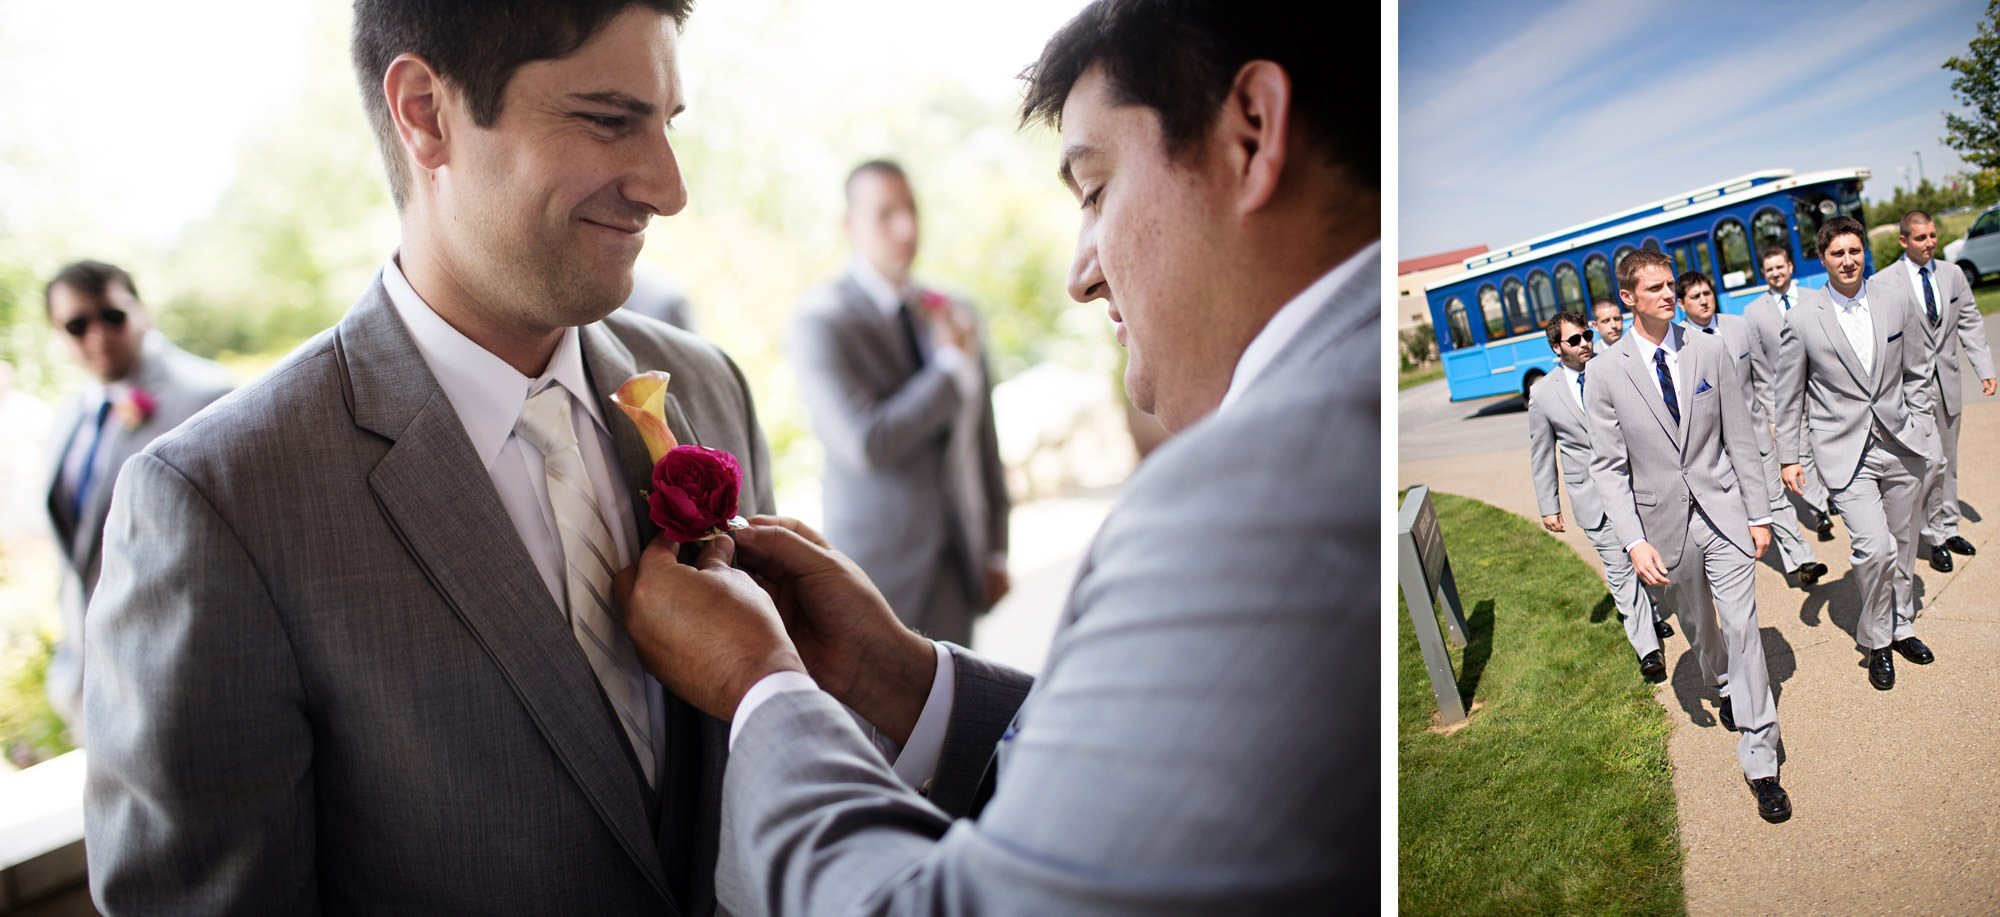 The groom puts on his boutonniere.